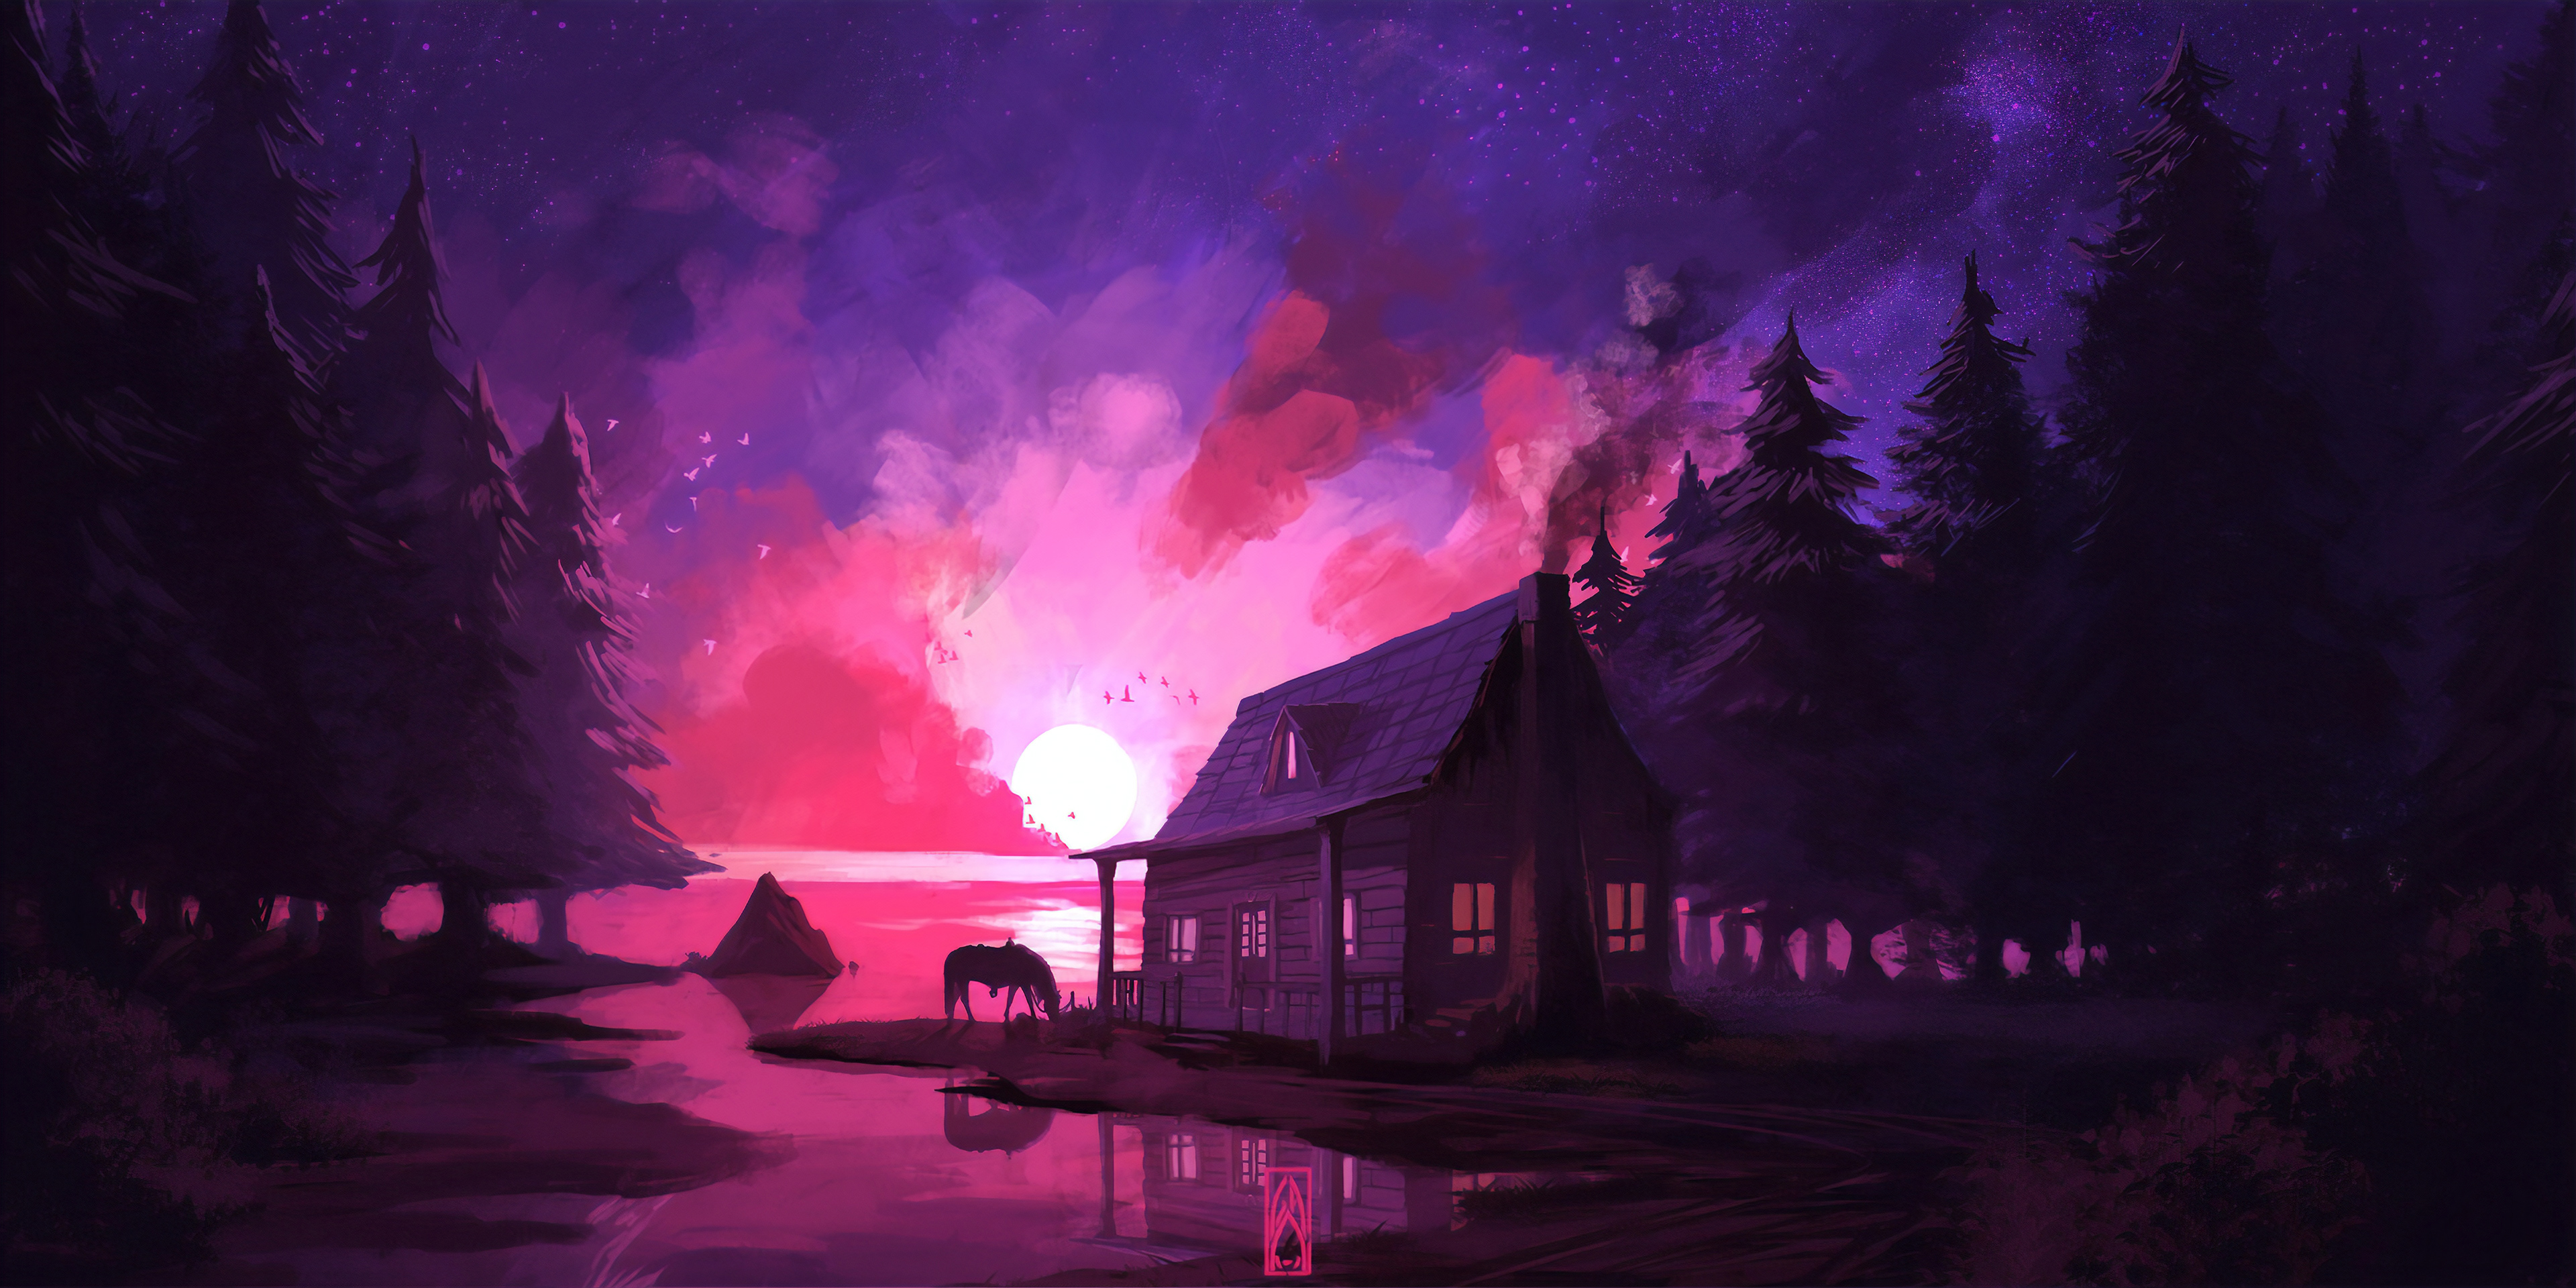 1336x768 Artistic House Hd Laptop Wallpaper Hd Artist 4k Wallpapers Images Photos And Background Wallpapers Den